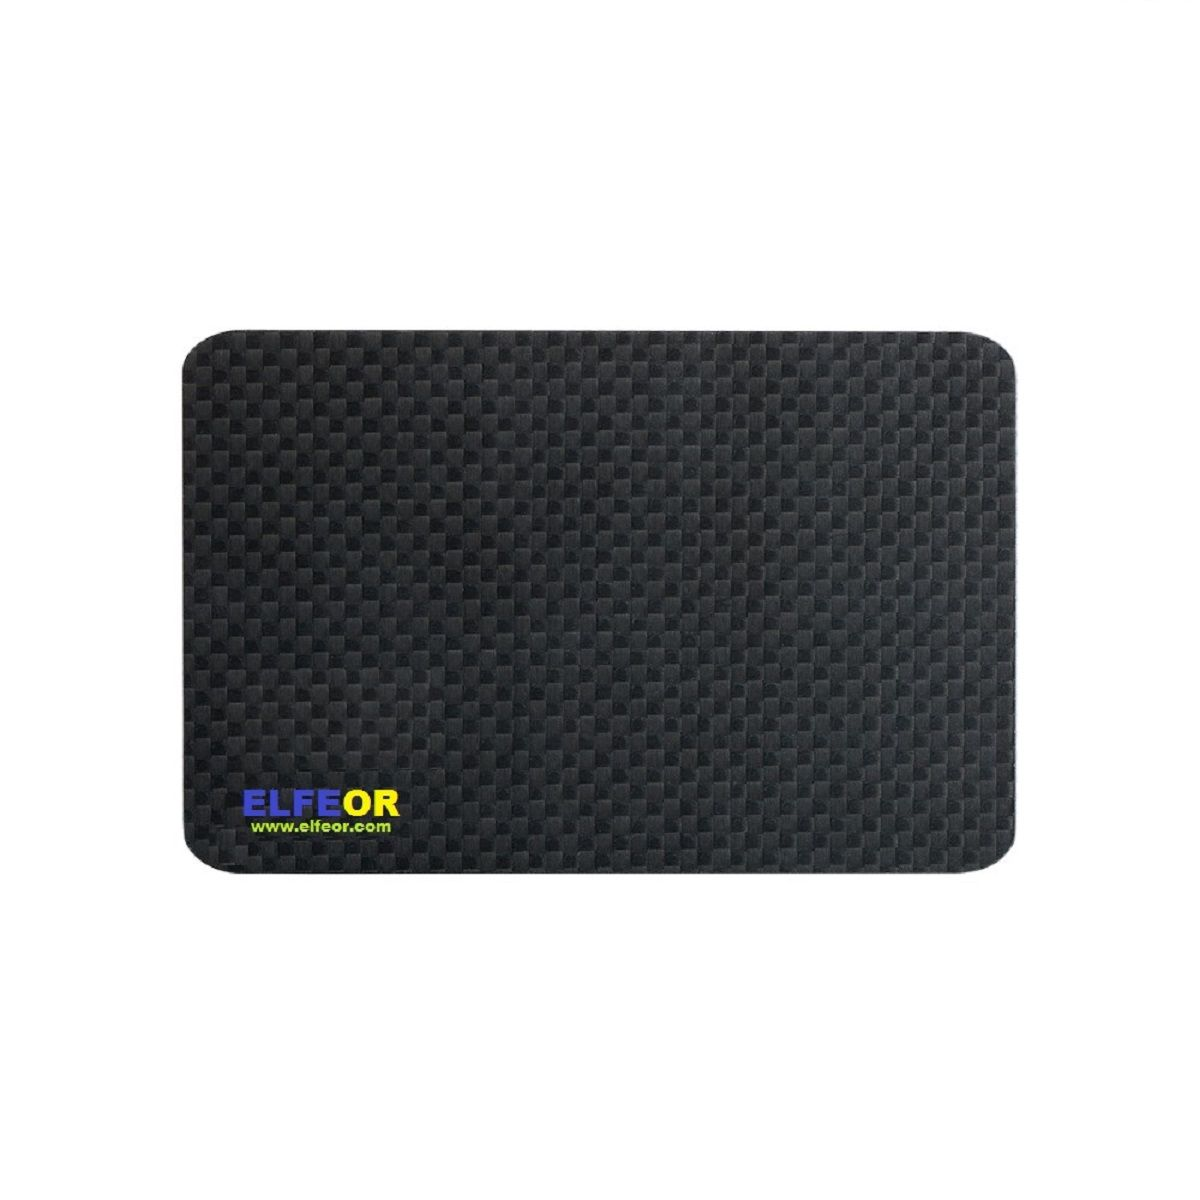 carbon fiber magnetic card holder wallet for credit cards id cards cash - Magnetic Card Holder